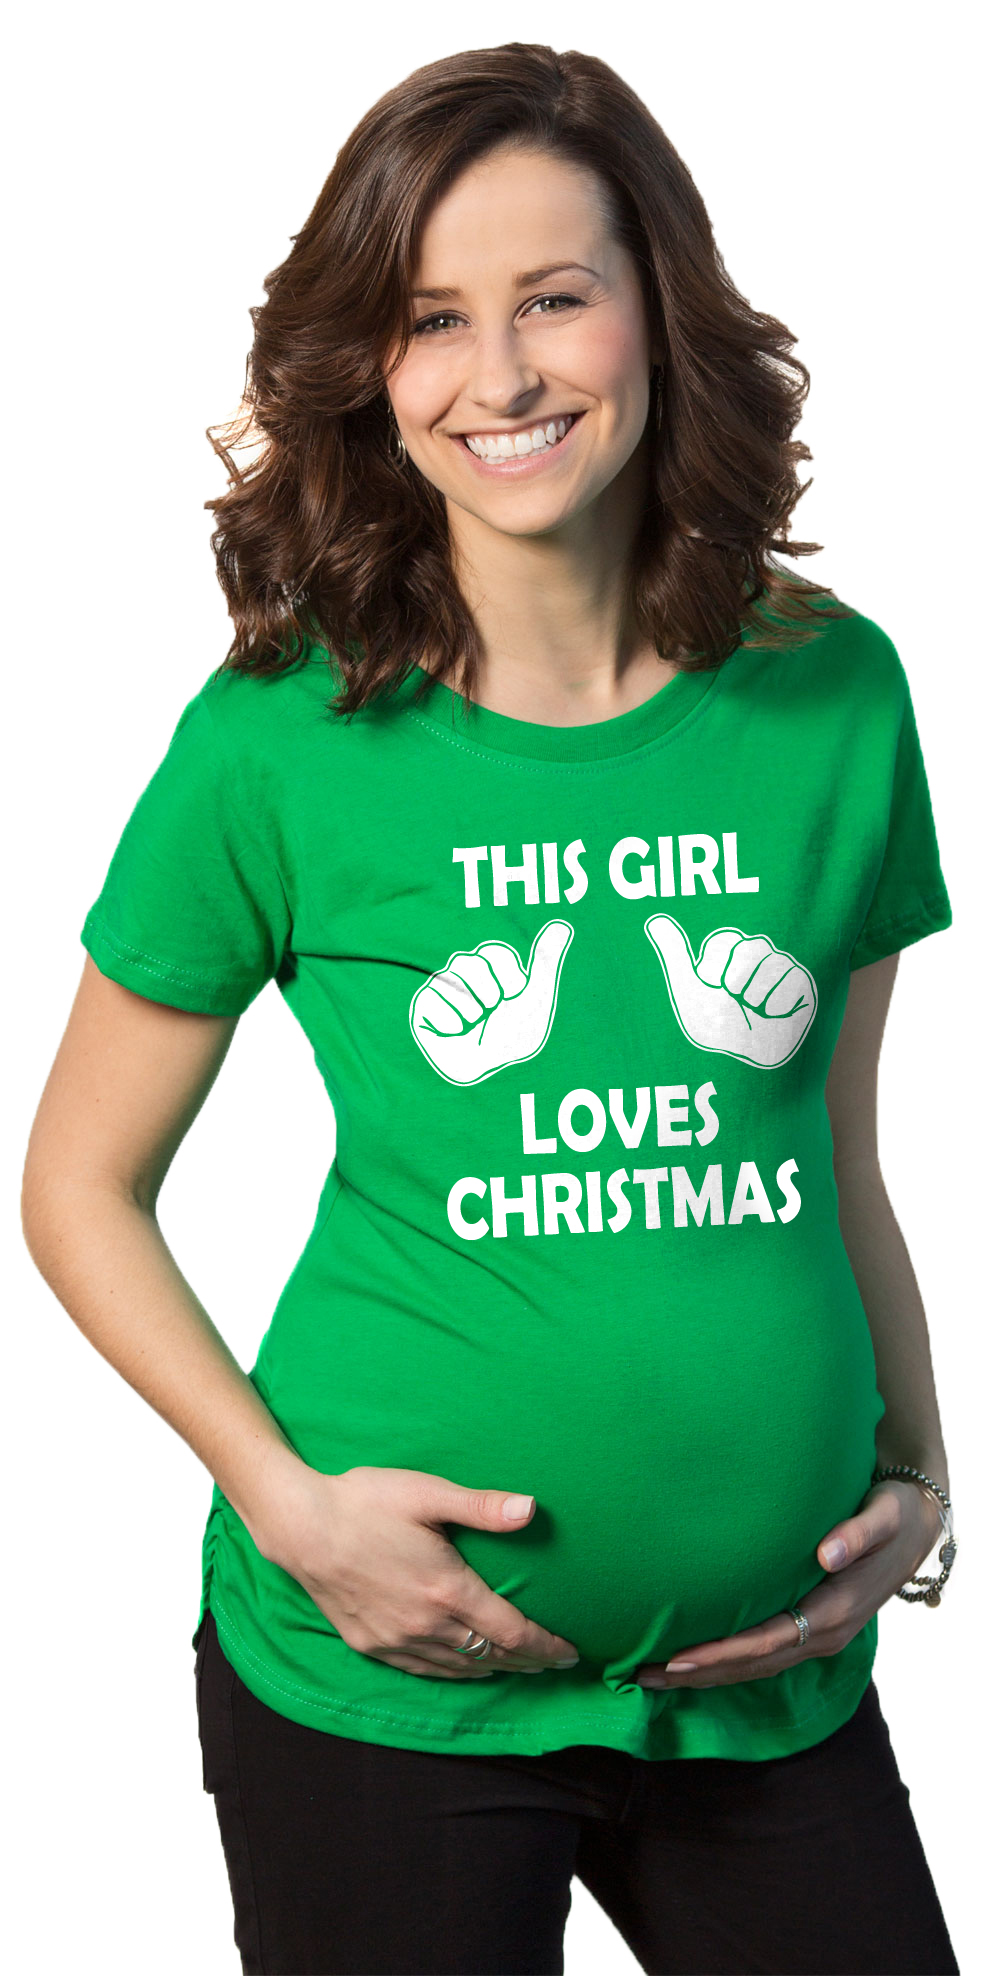 Crazy Dog TShirts - Maternity This Girl Loves Christmas Funny Holiday Pregnancy T Shirt for Women